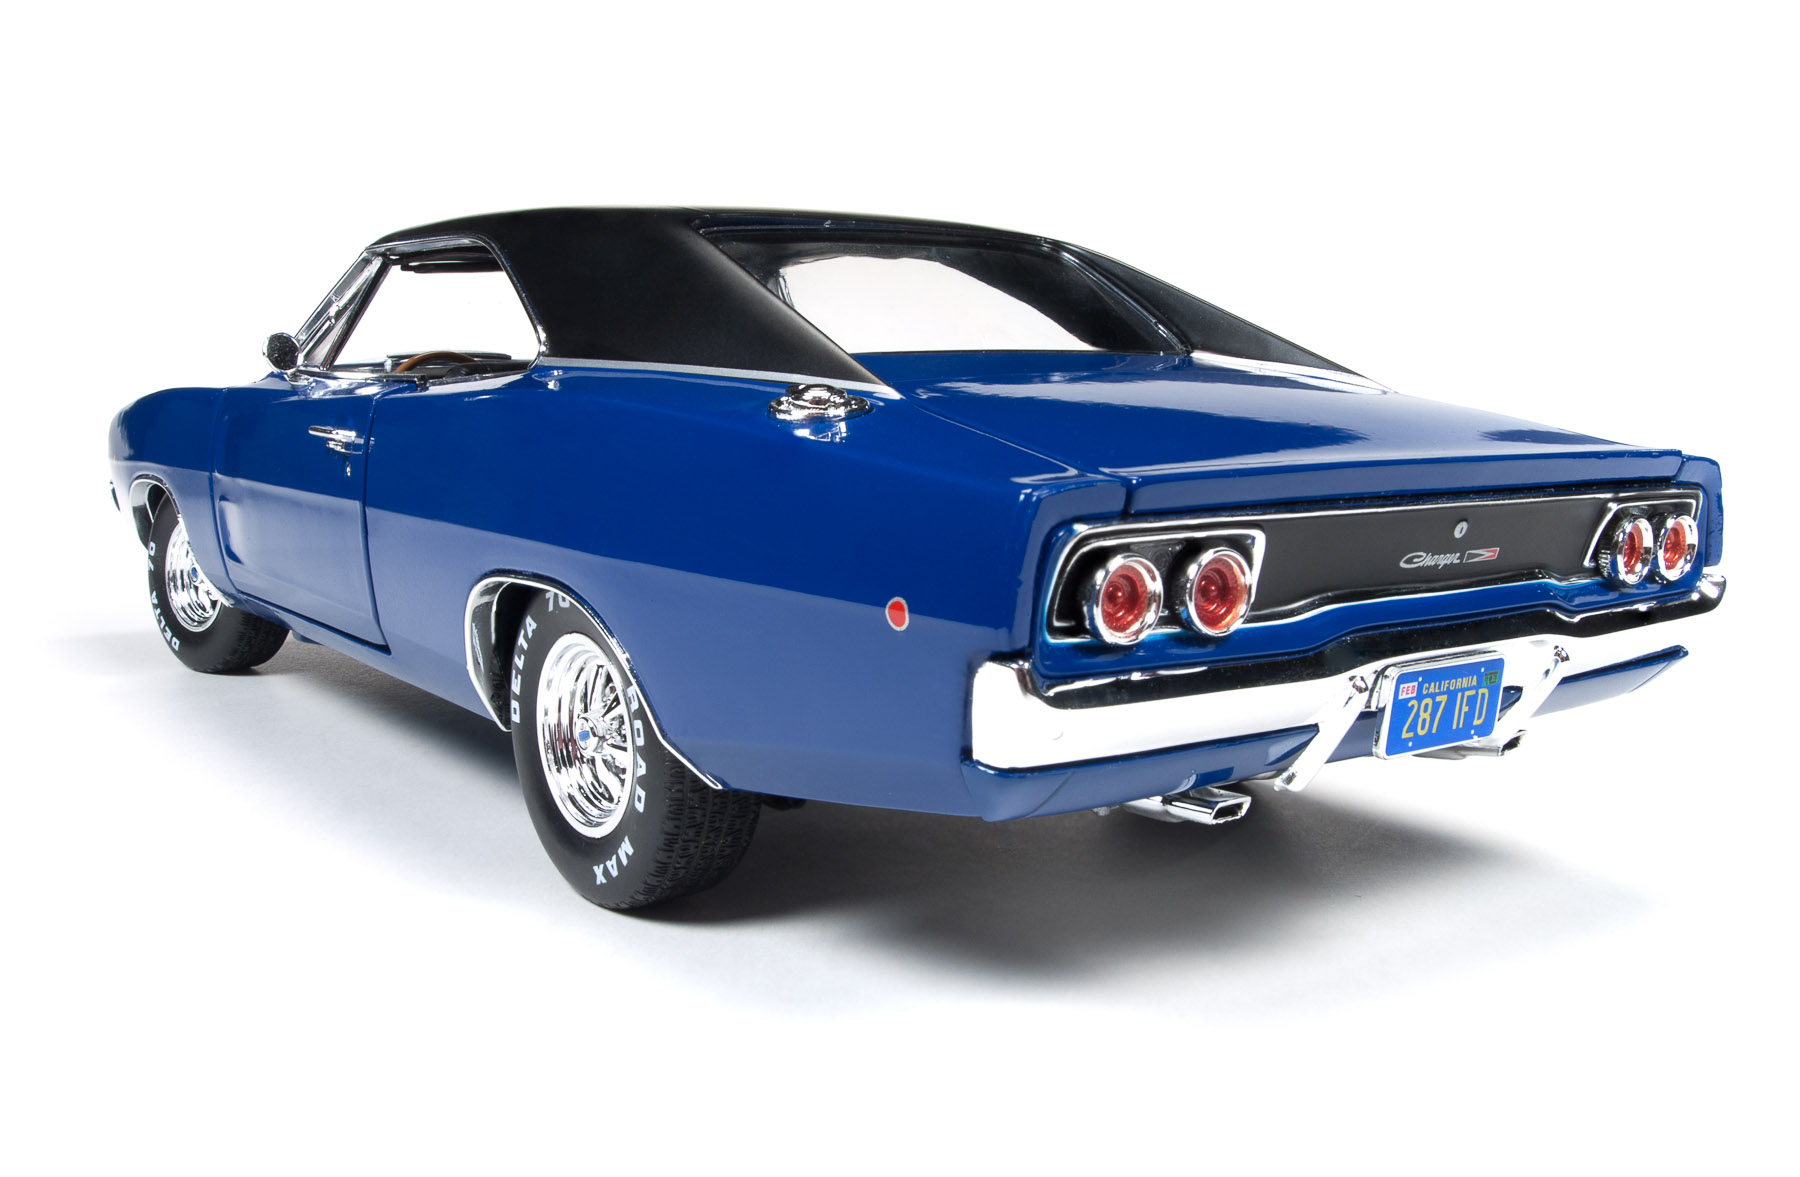 1968 Dodge Charger Hardtop Christine Round2 Drag Car Home Scale 118